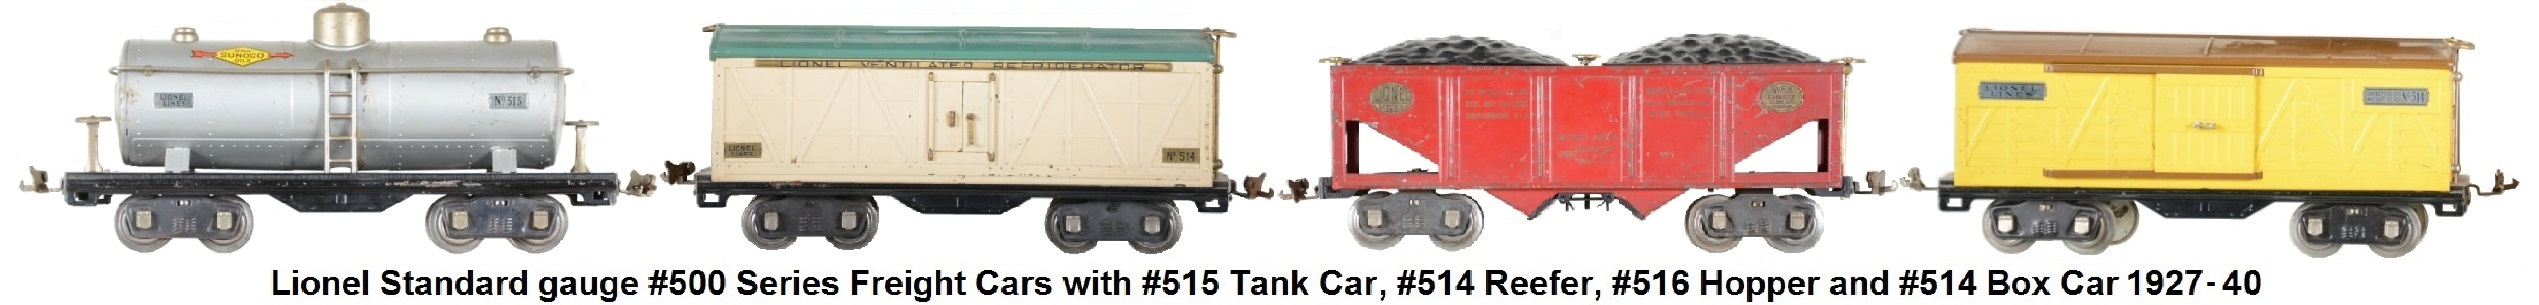 Lionel Standard gauge #515 tank car from 1927 and Lionel Standard gauge #214 box car from 1926